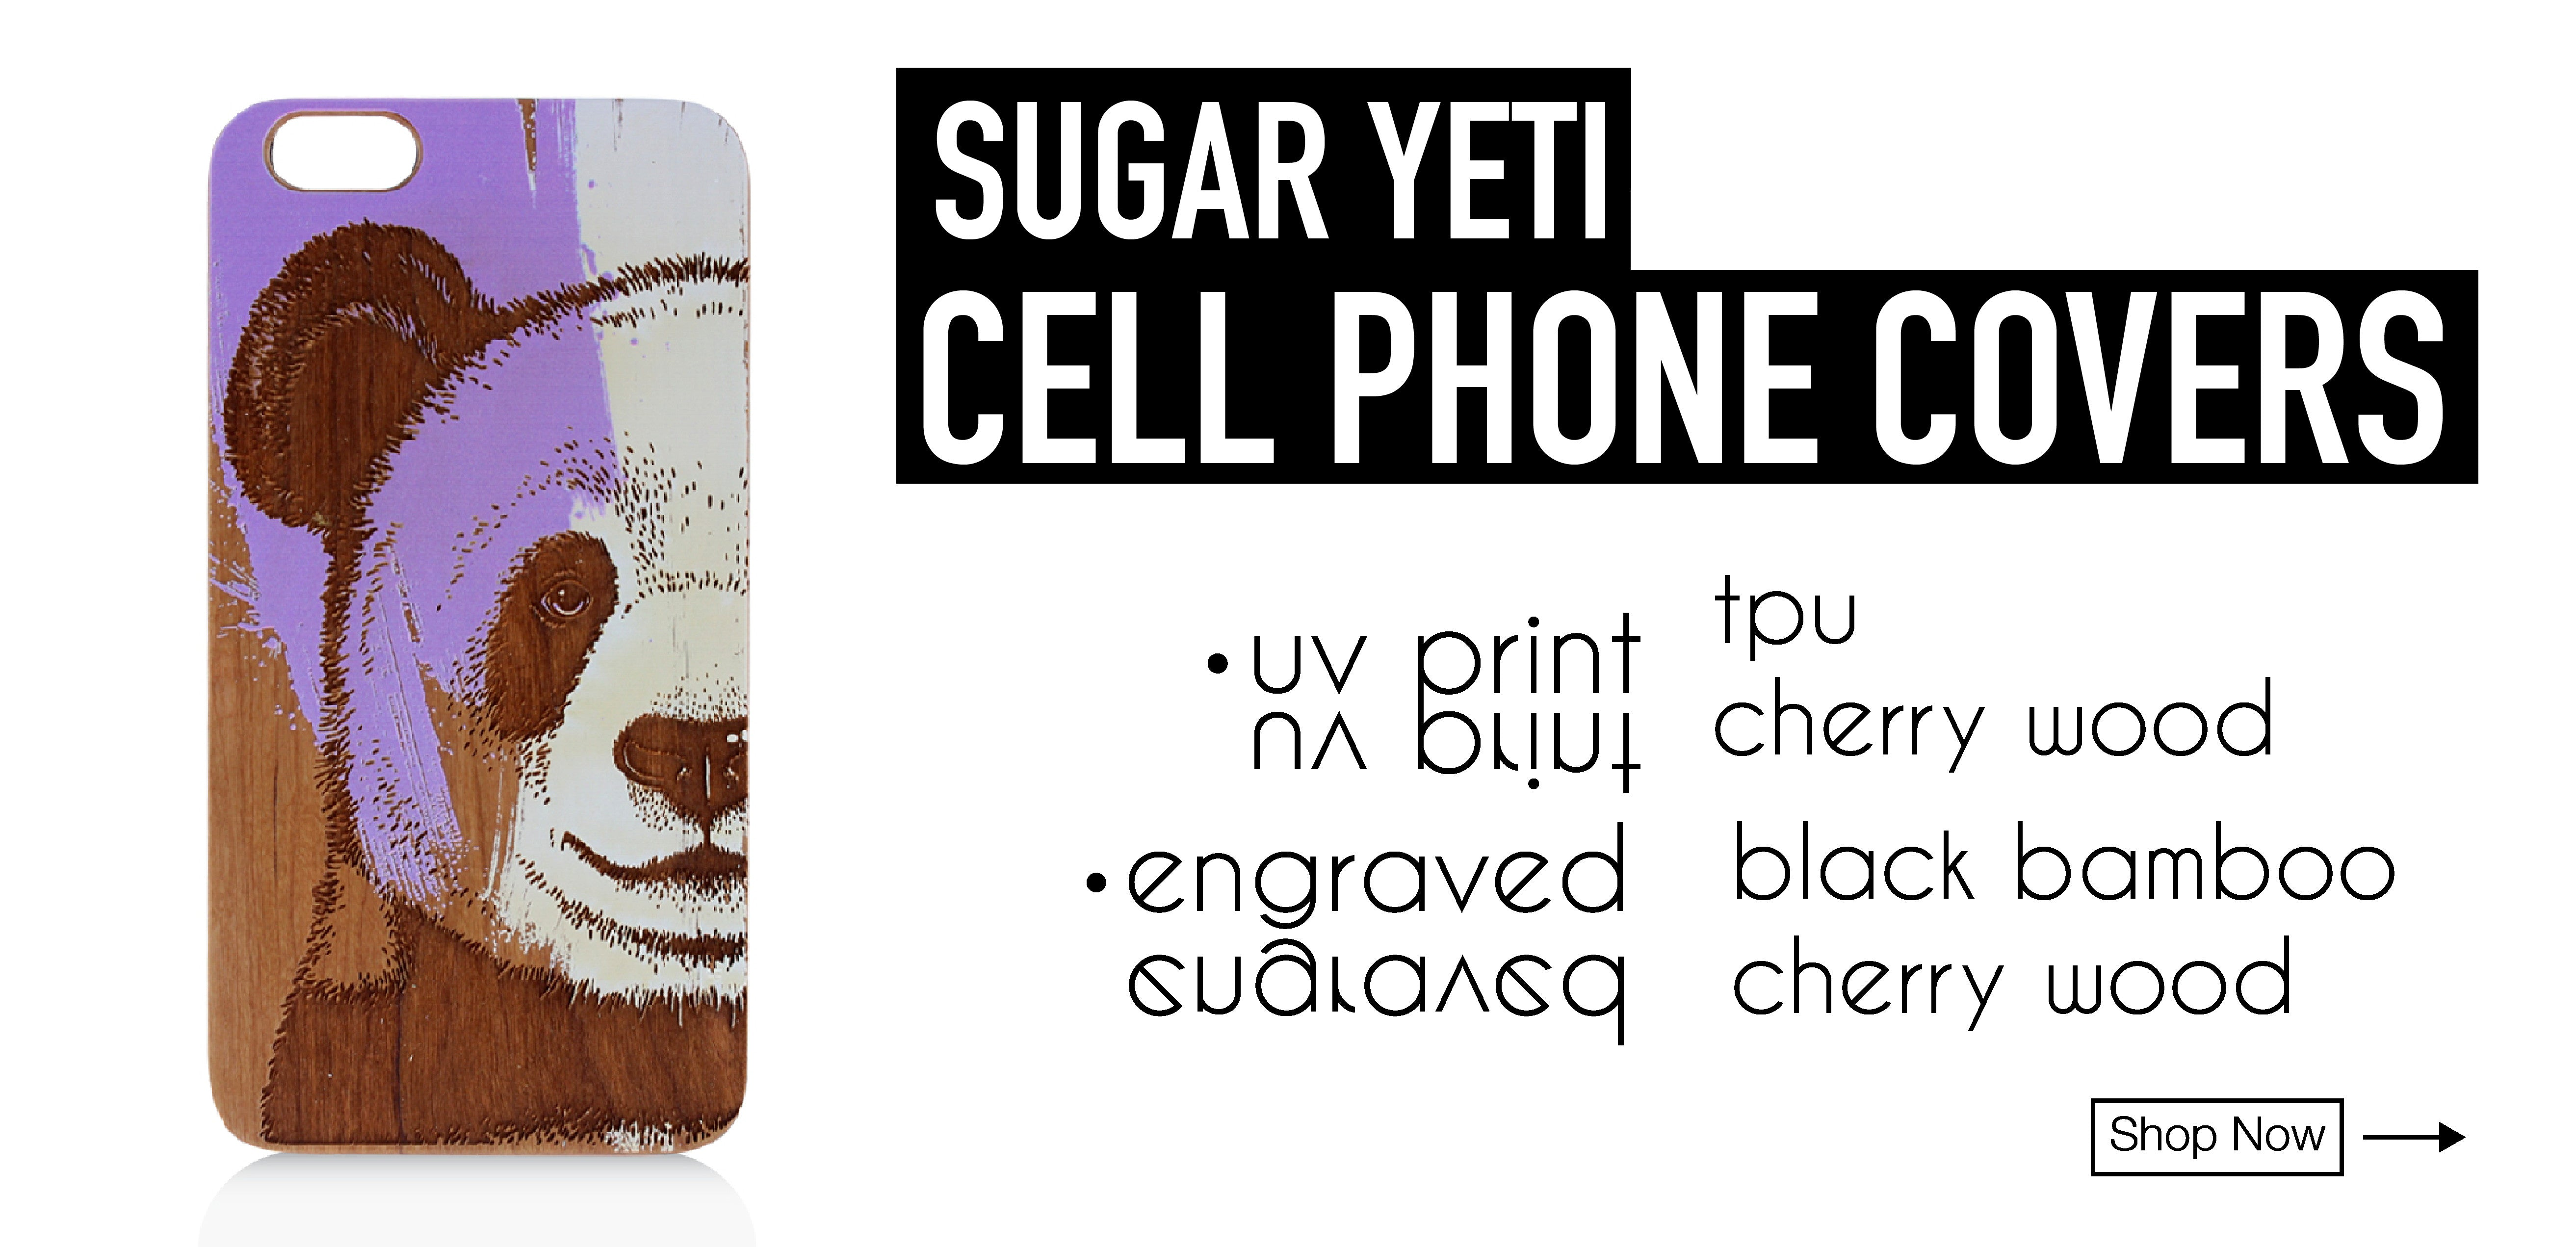 Sugar Yeti Cell Phone Covers for iPhone and Samsung Phones